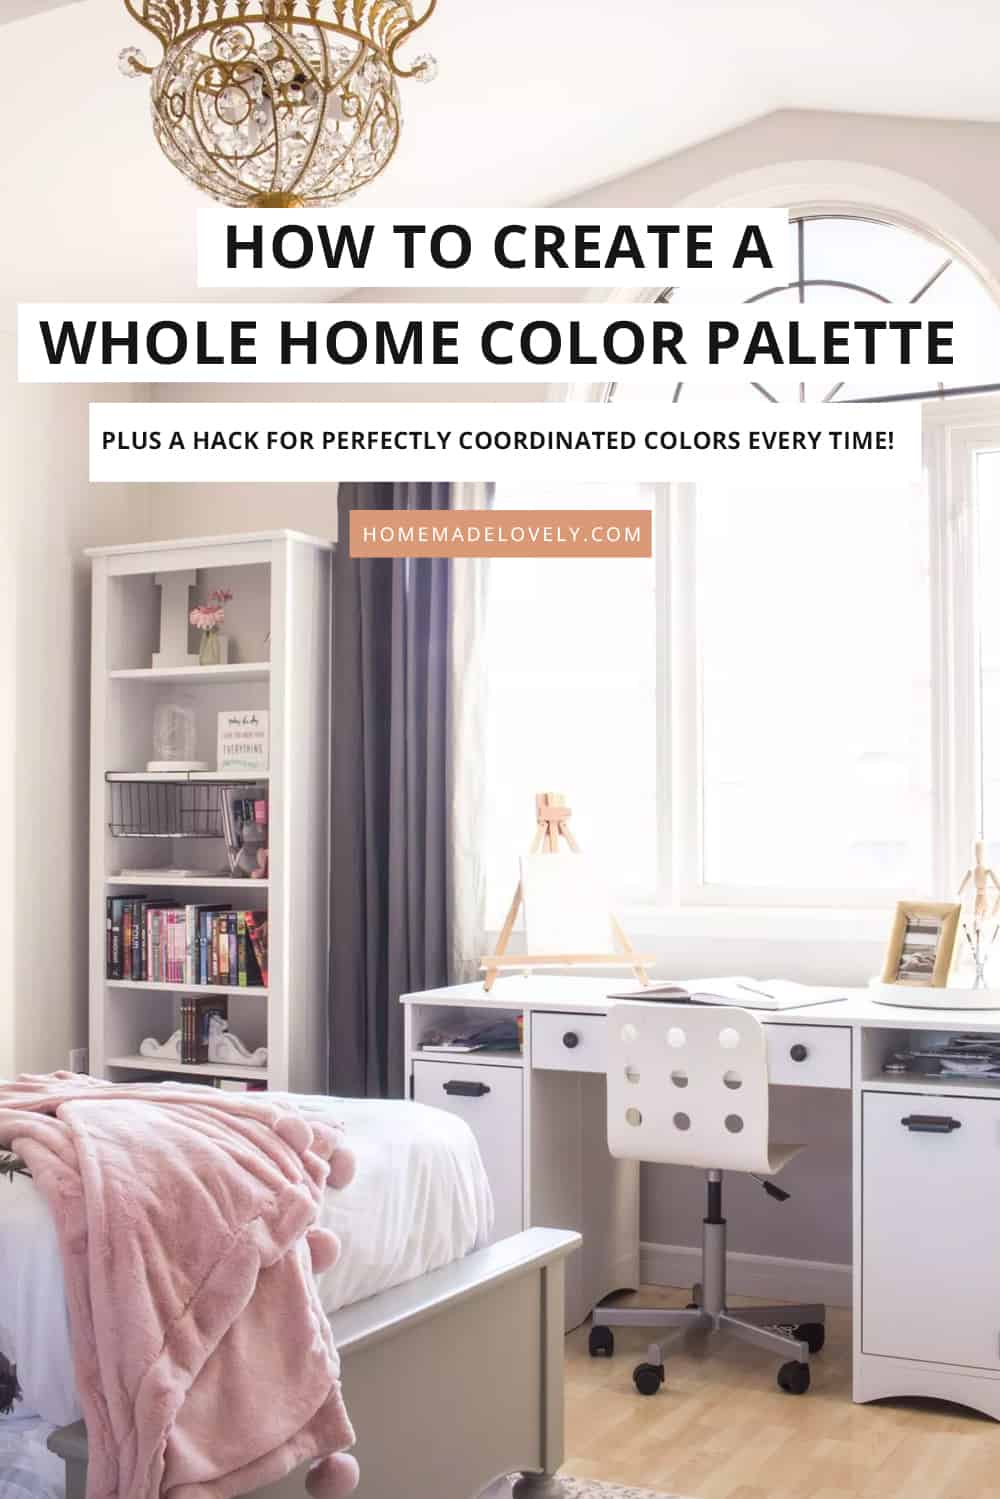 Bright bedroom with a desk under a window with words on image to show how to create a whole home color scheme